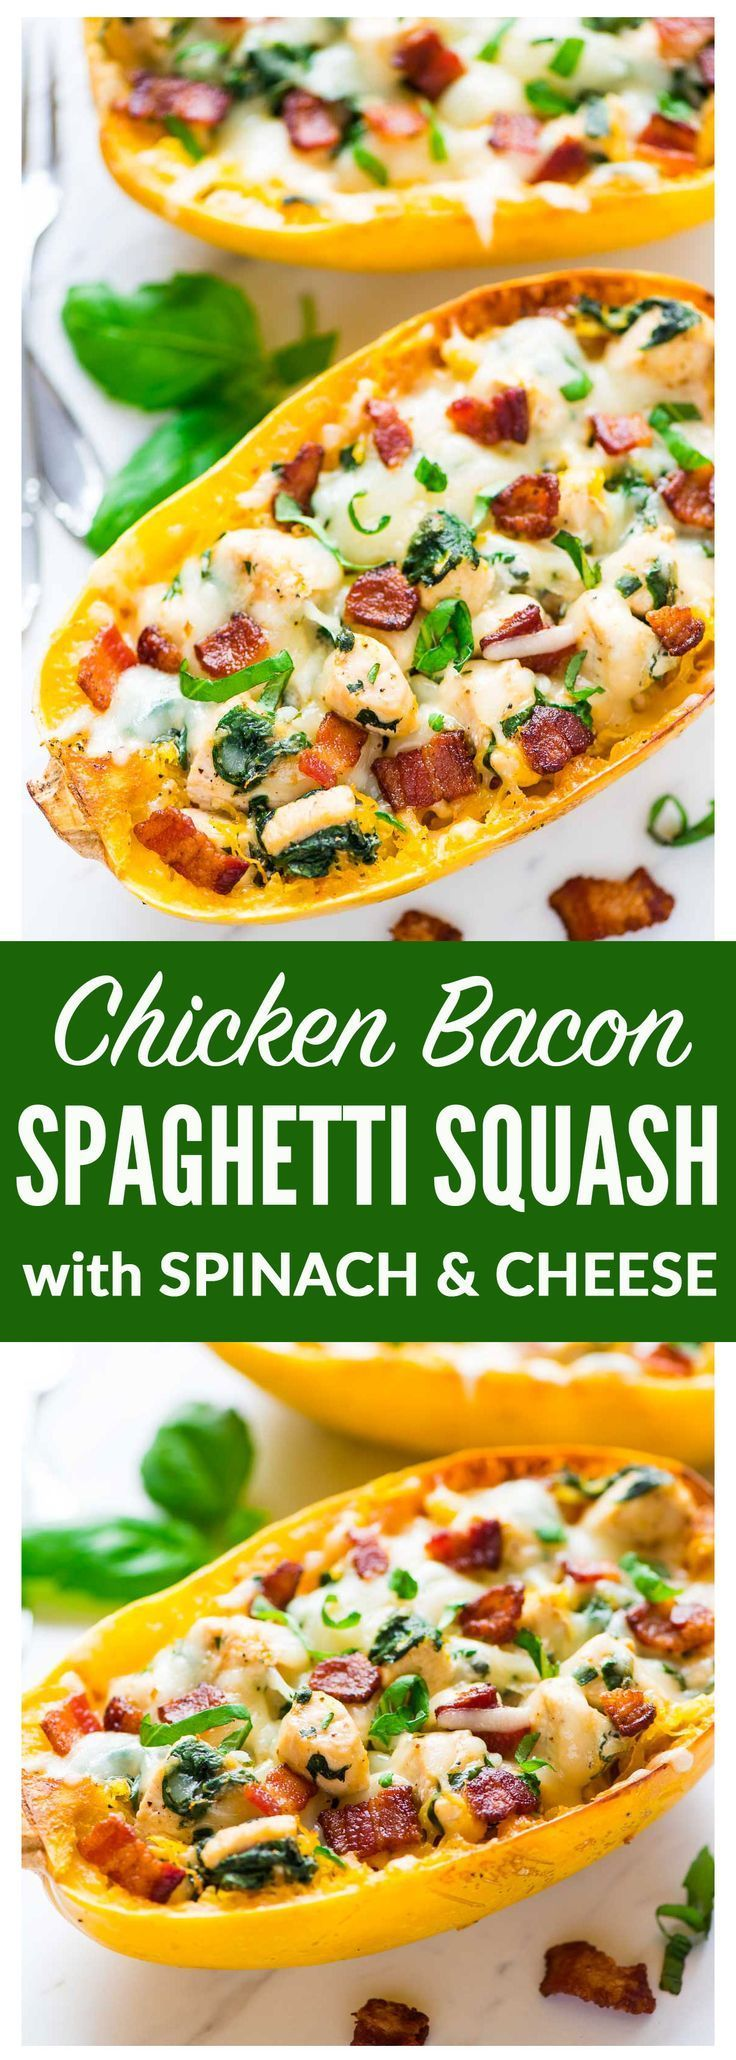 Spaghetti Squash Boats with Chicken, Bacon, Spinach, and Cheese. A healthy, low carb meal that tastes like chicken alfredo! Easy, gluten free, and absolutely delicious. Recipe at http://wellplated.com (Low Carb Squash Recipes)